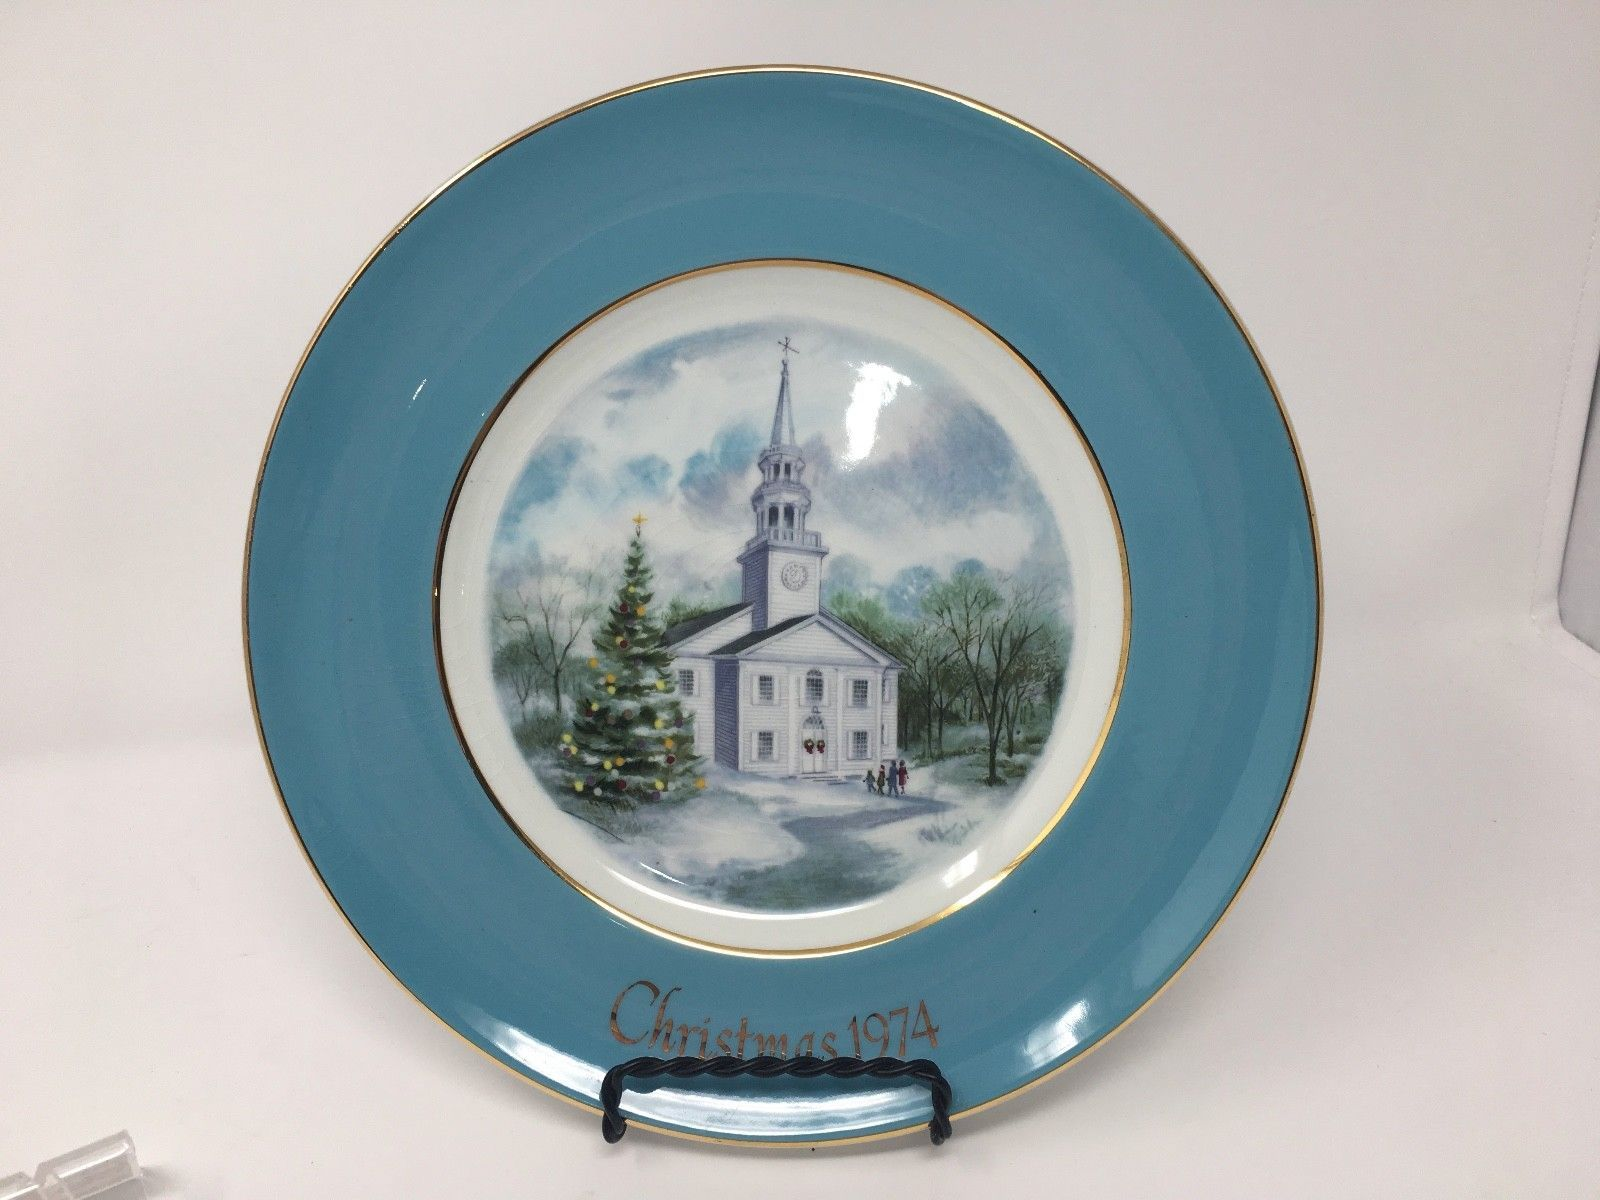 Avon 1974 Christmas Church Collector's Plate - Second Edition - Country Church image 2